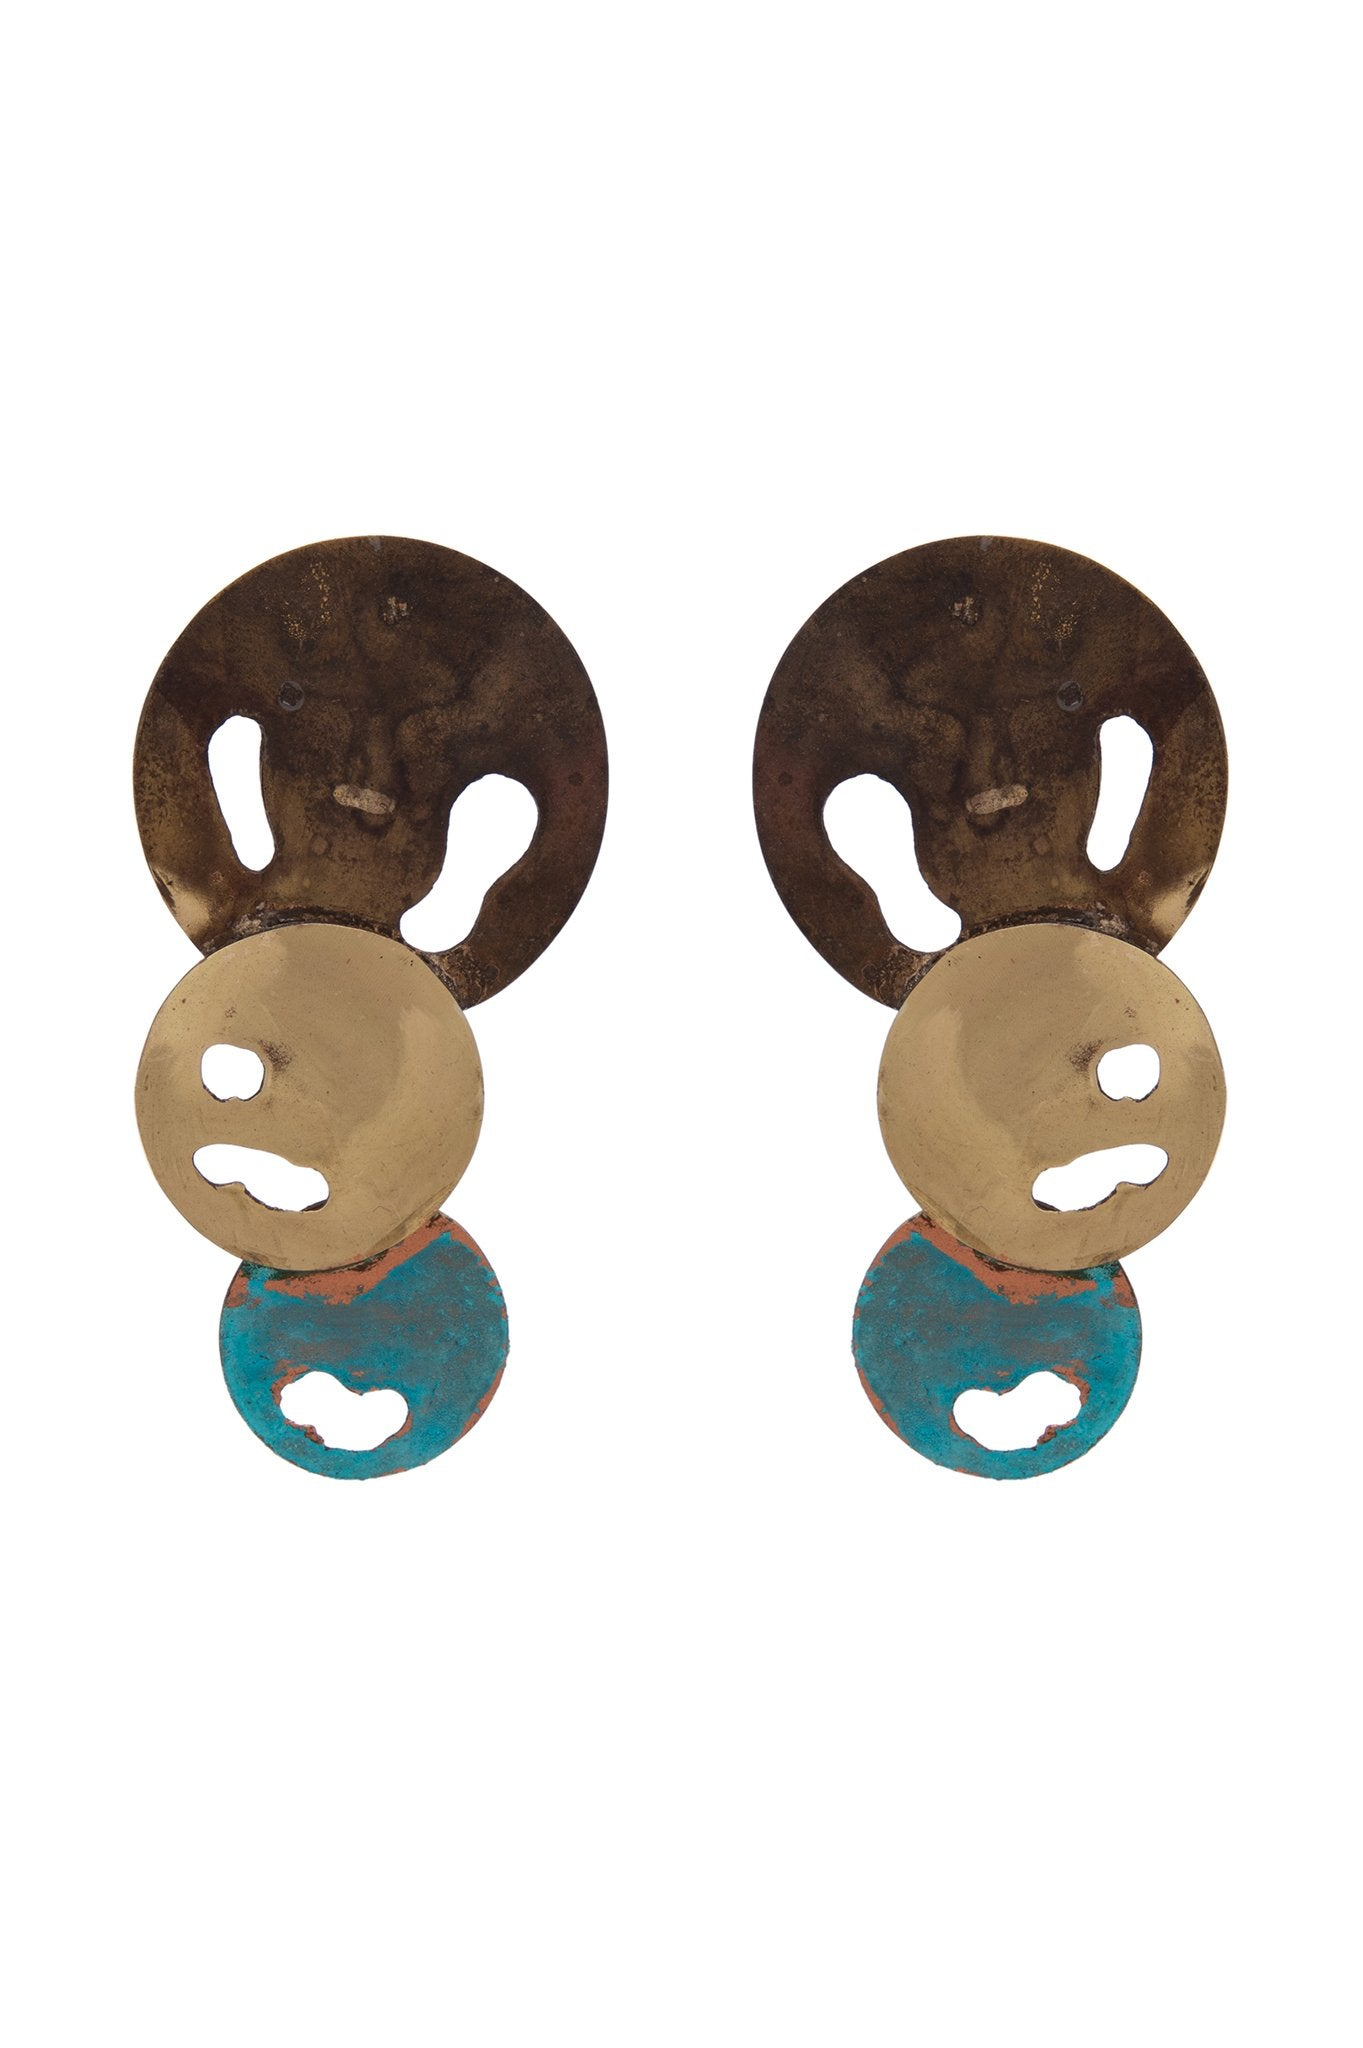 3 DISCS EARRINGS